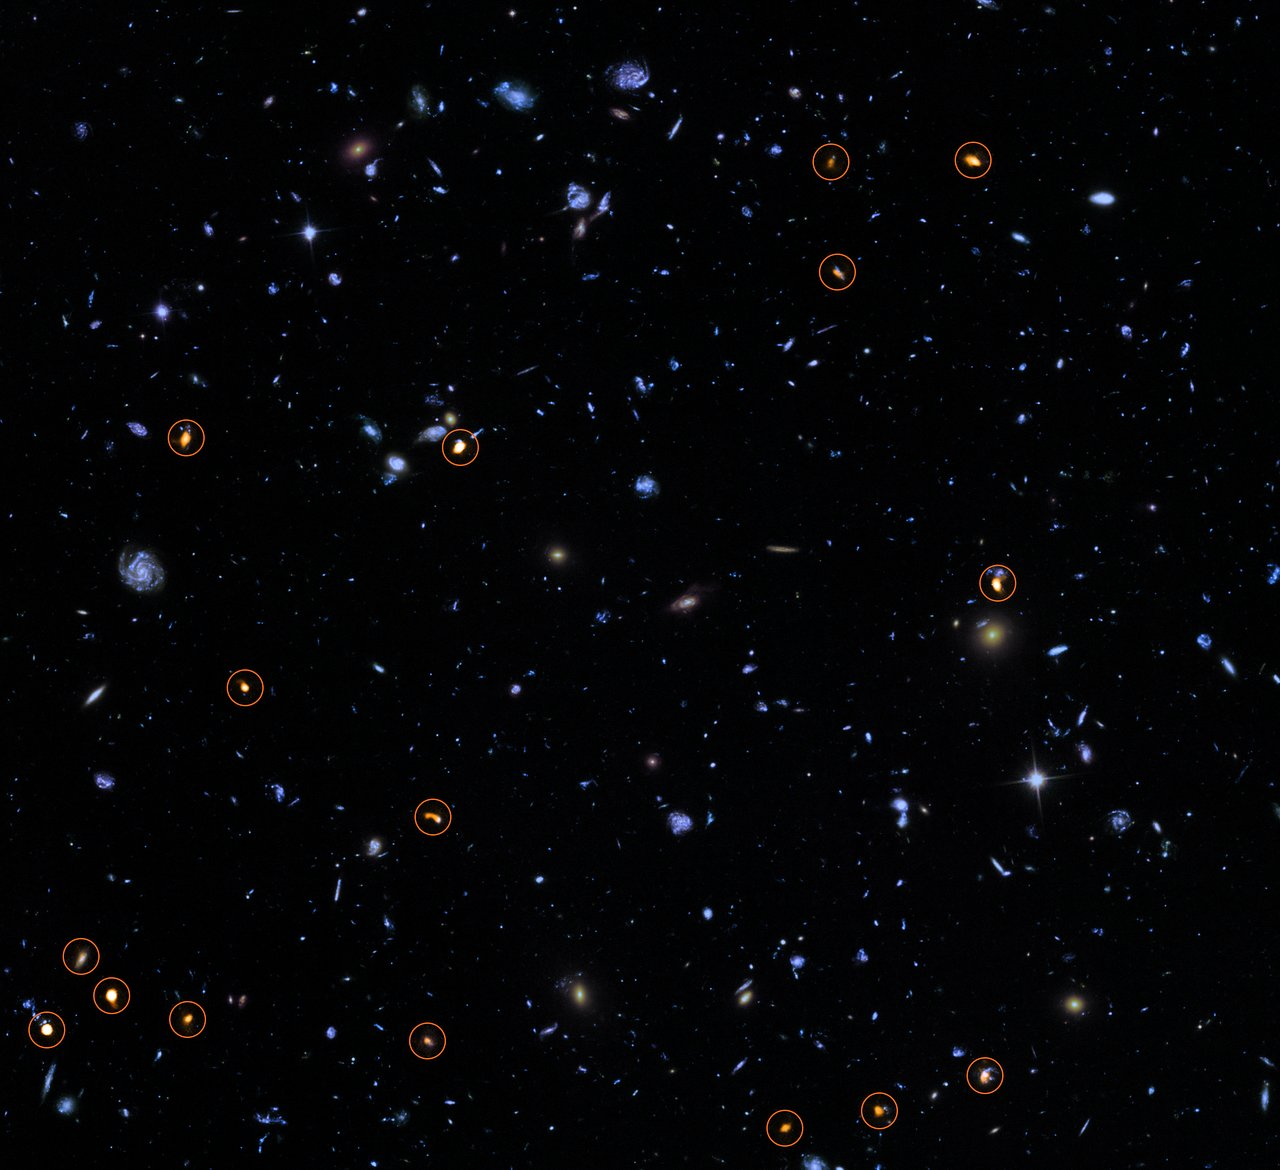 This image combines a background picture taken by the NASA/ESA Hubble Space Telescope (blue/green) with a new very deep ALMA view of this field (orange, marked with circles). Credit: ALMA (ESO/NAOJ/NRAO)/NASA/ESA/J. Dunlop et al. and S. Beckwith (STScI) and the HUDF Team.